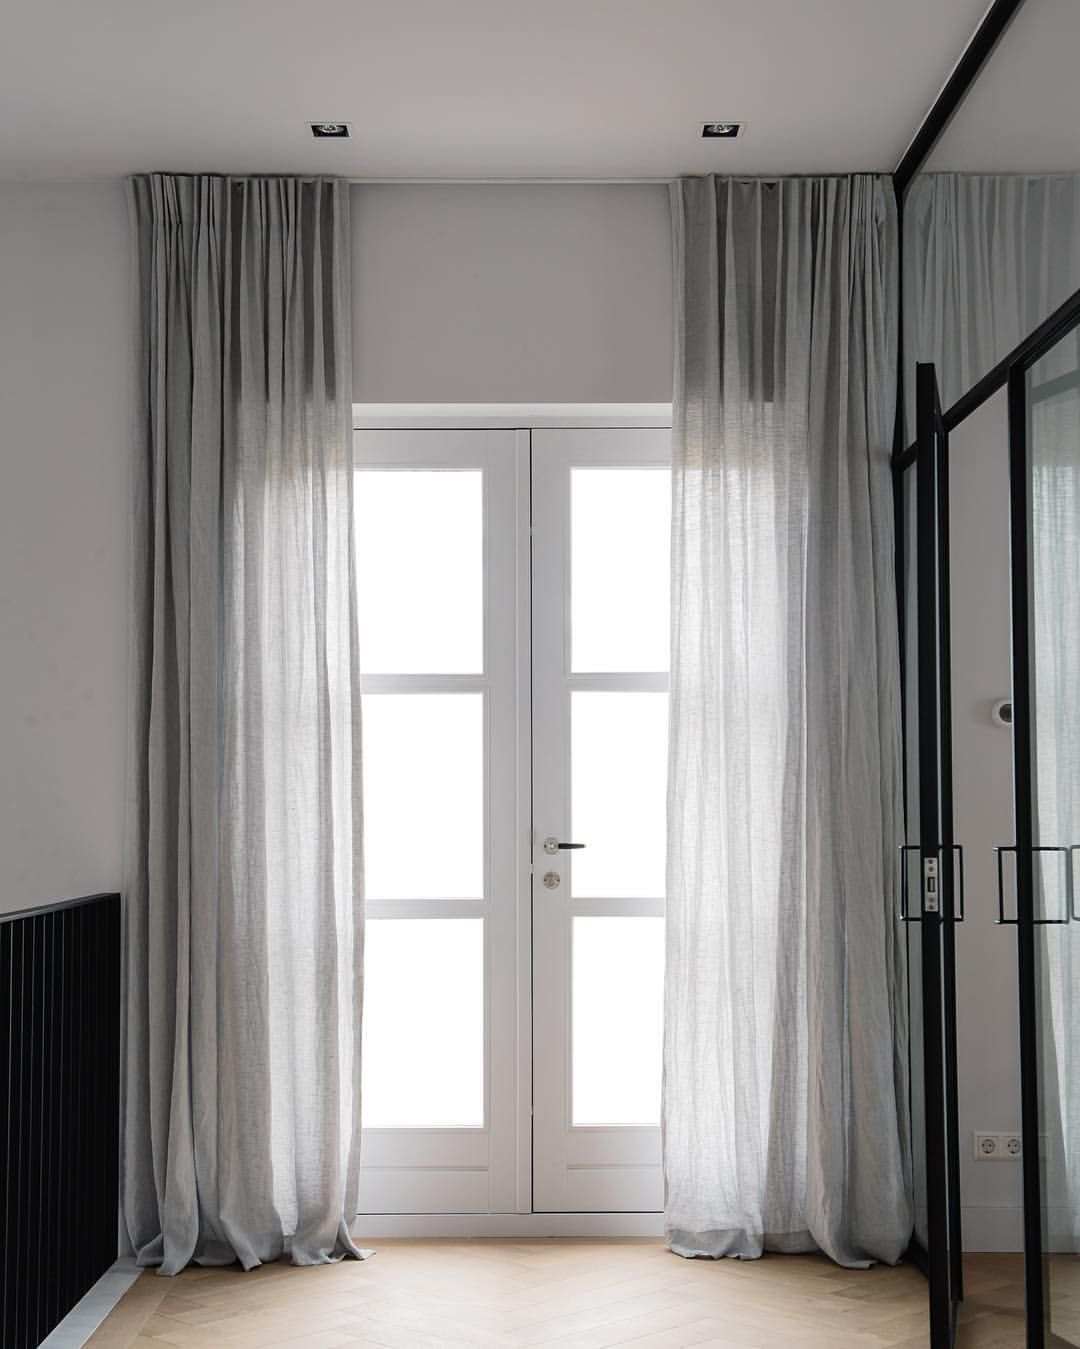 of for gorgeous yellow grey bedroom image walls inspirational and light dark decorating ideas perfect home with elegant gray excellent purple design full curtains